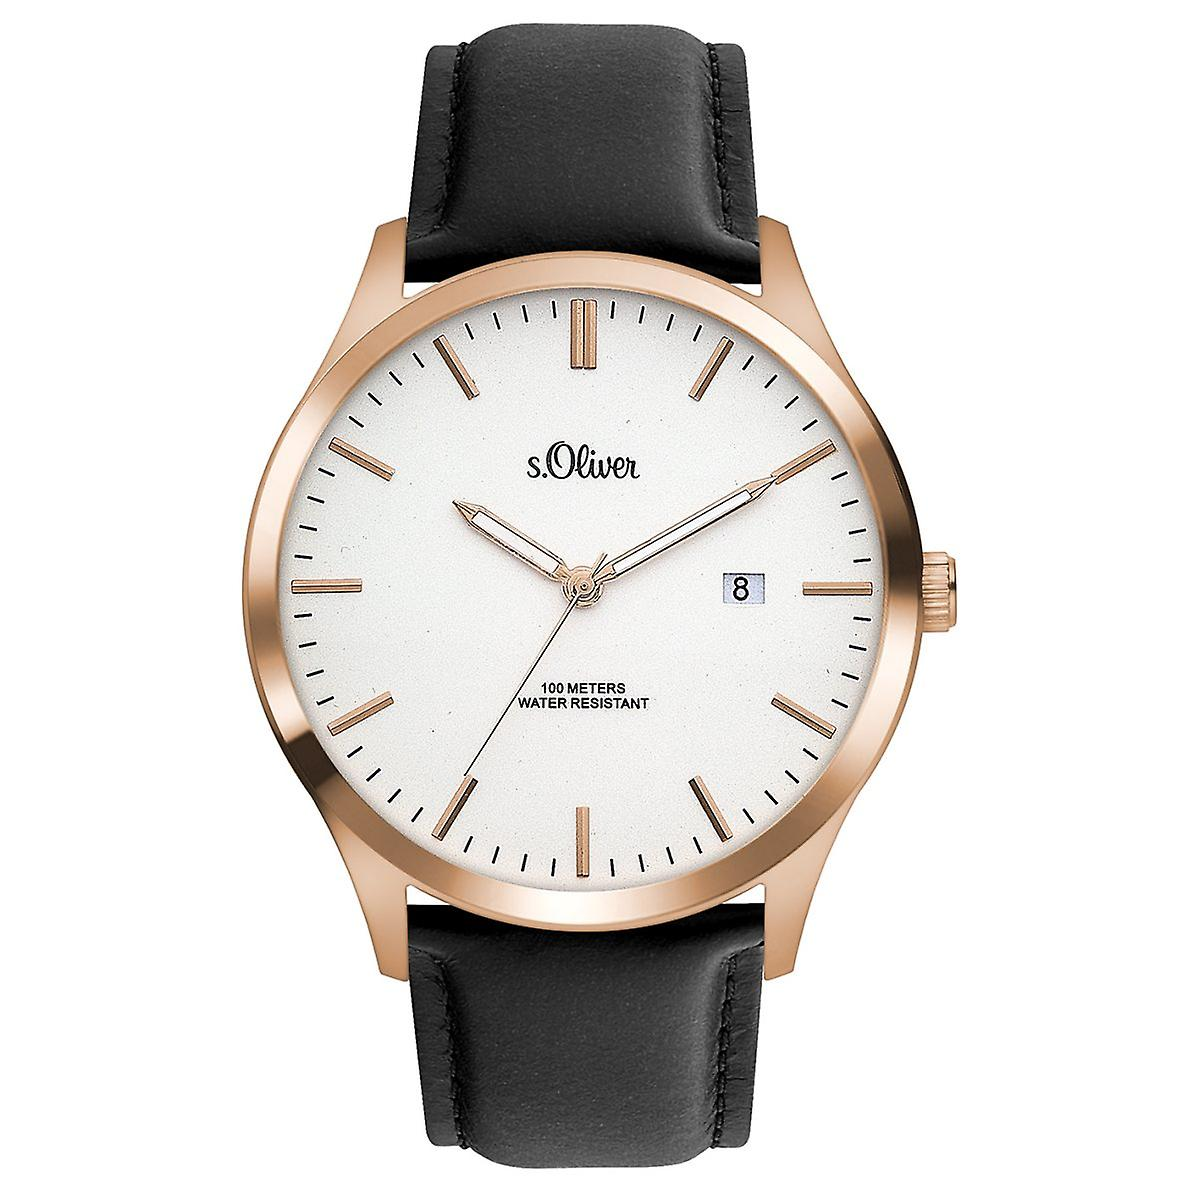 quality products pre order performance sportswear s.Oliver men's watch wristwatch leather SO-3477-LQ